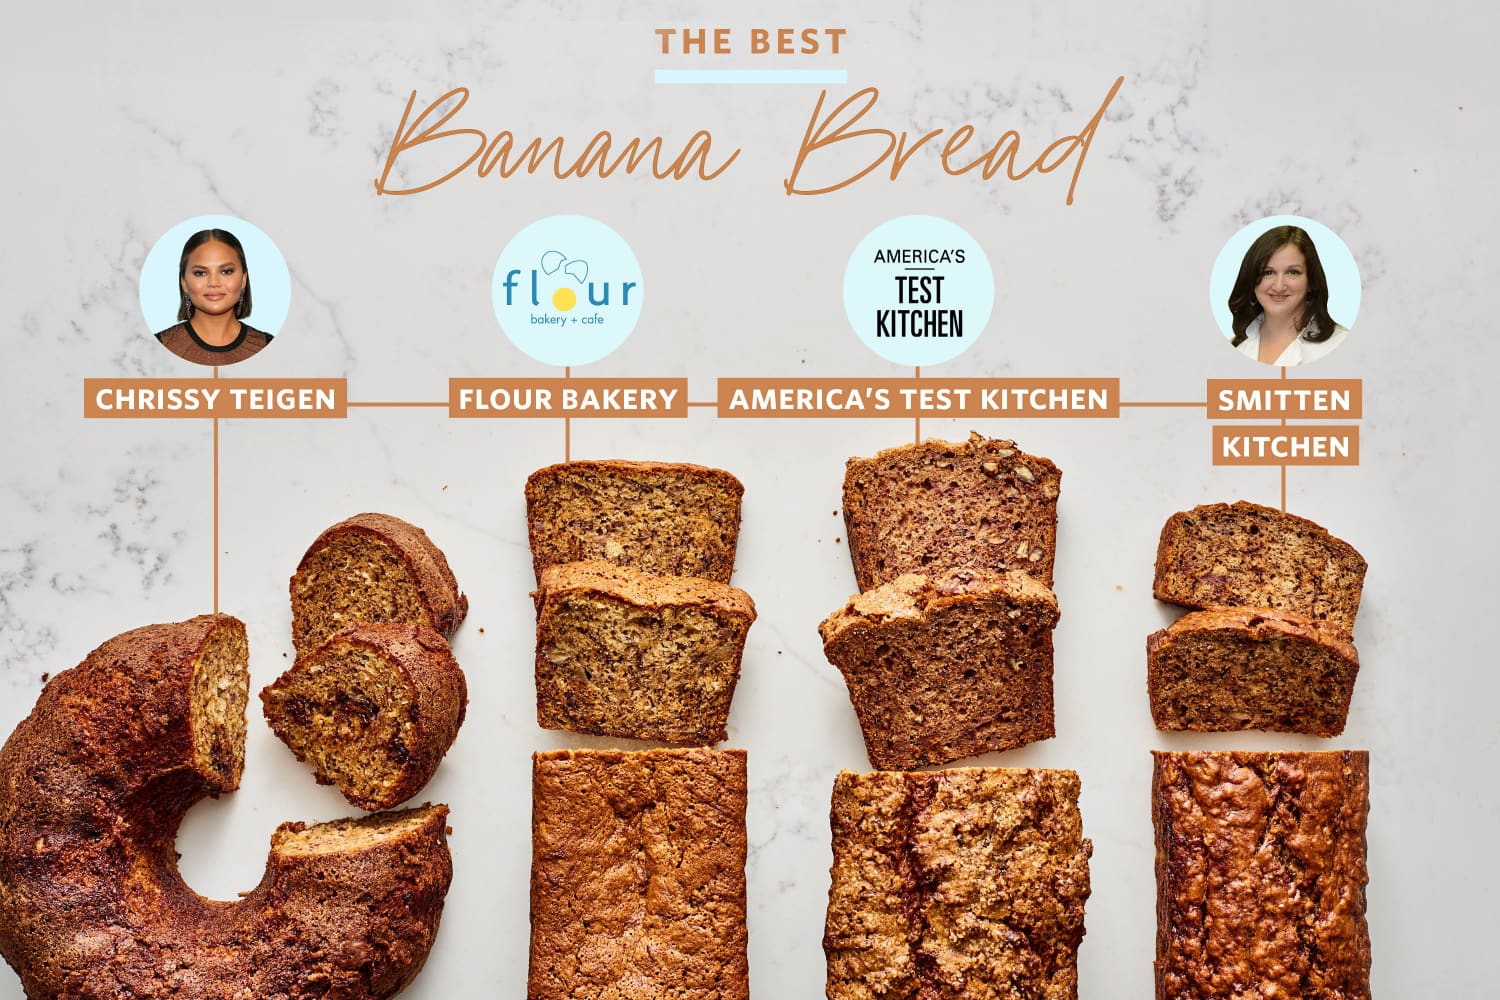 We Tested 4 Famous Banana Bread Recipes and Did *Not* Expect These Results